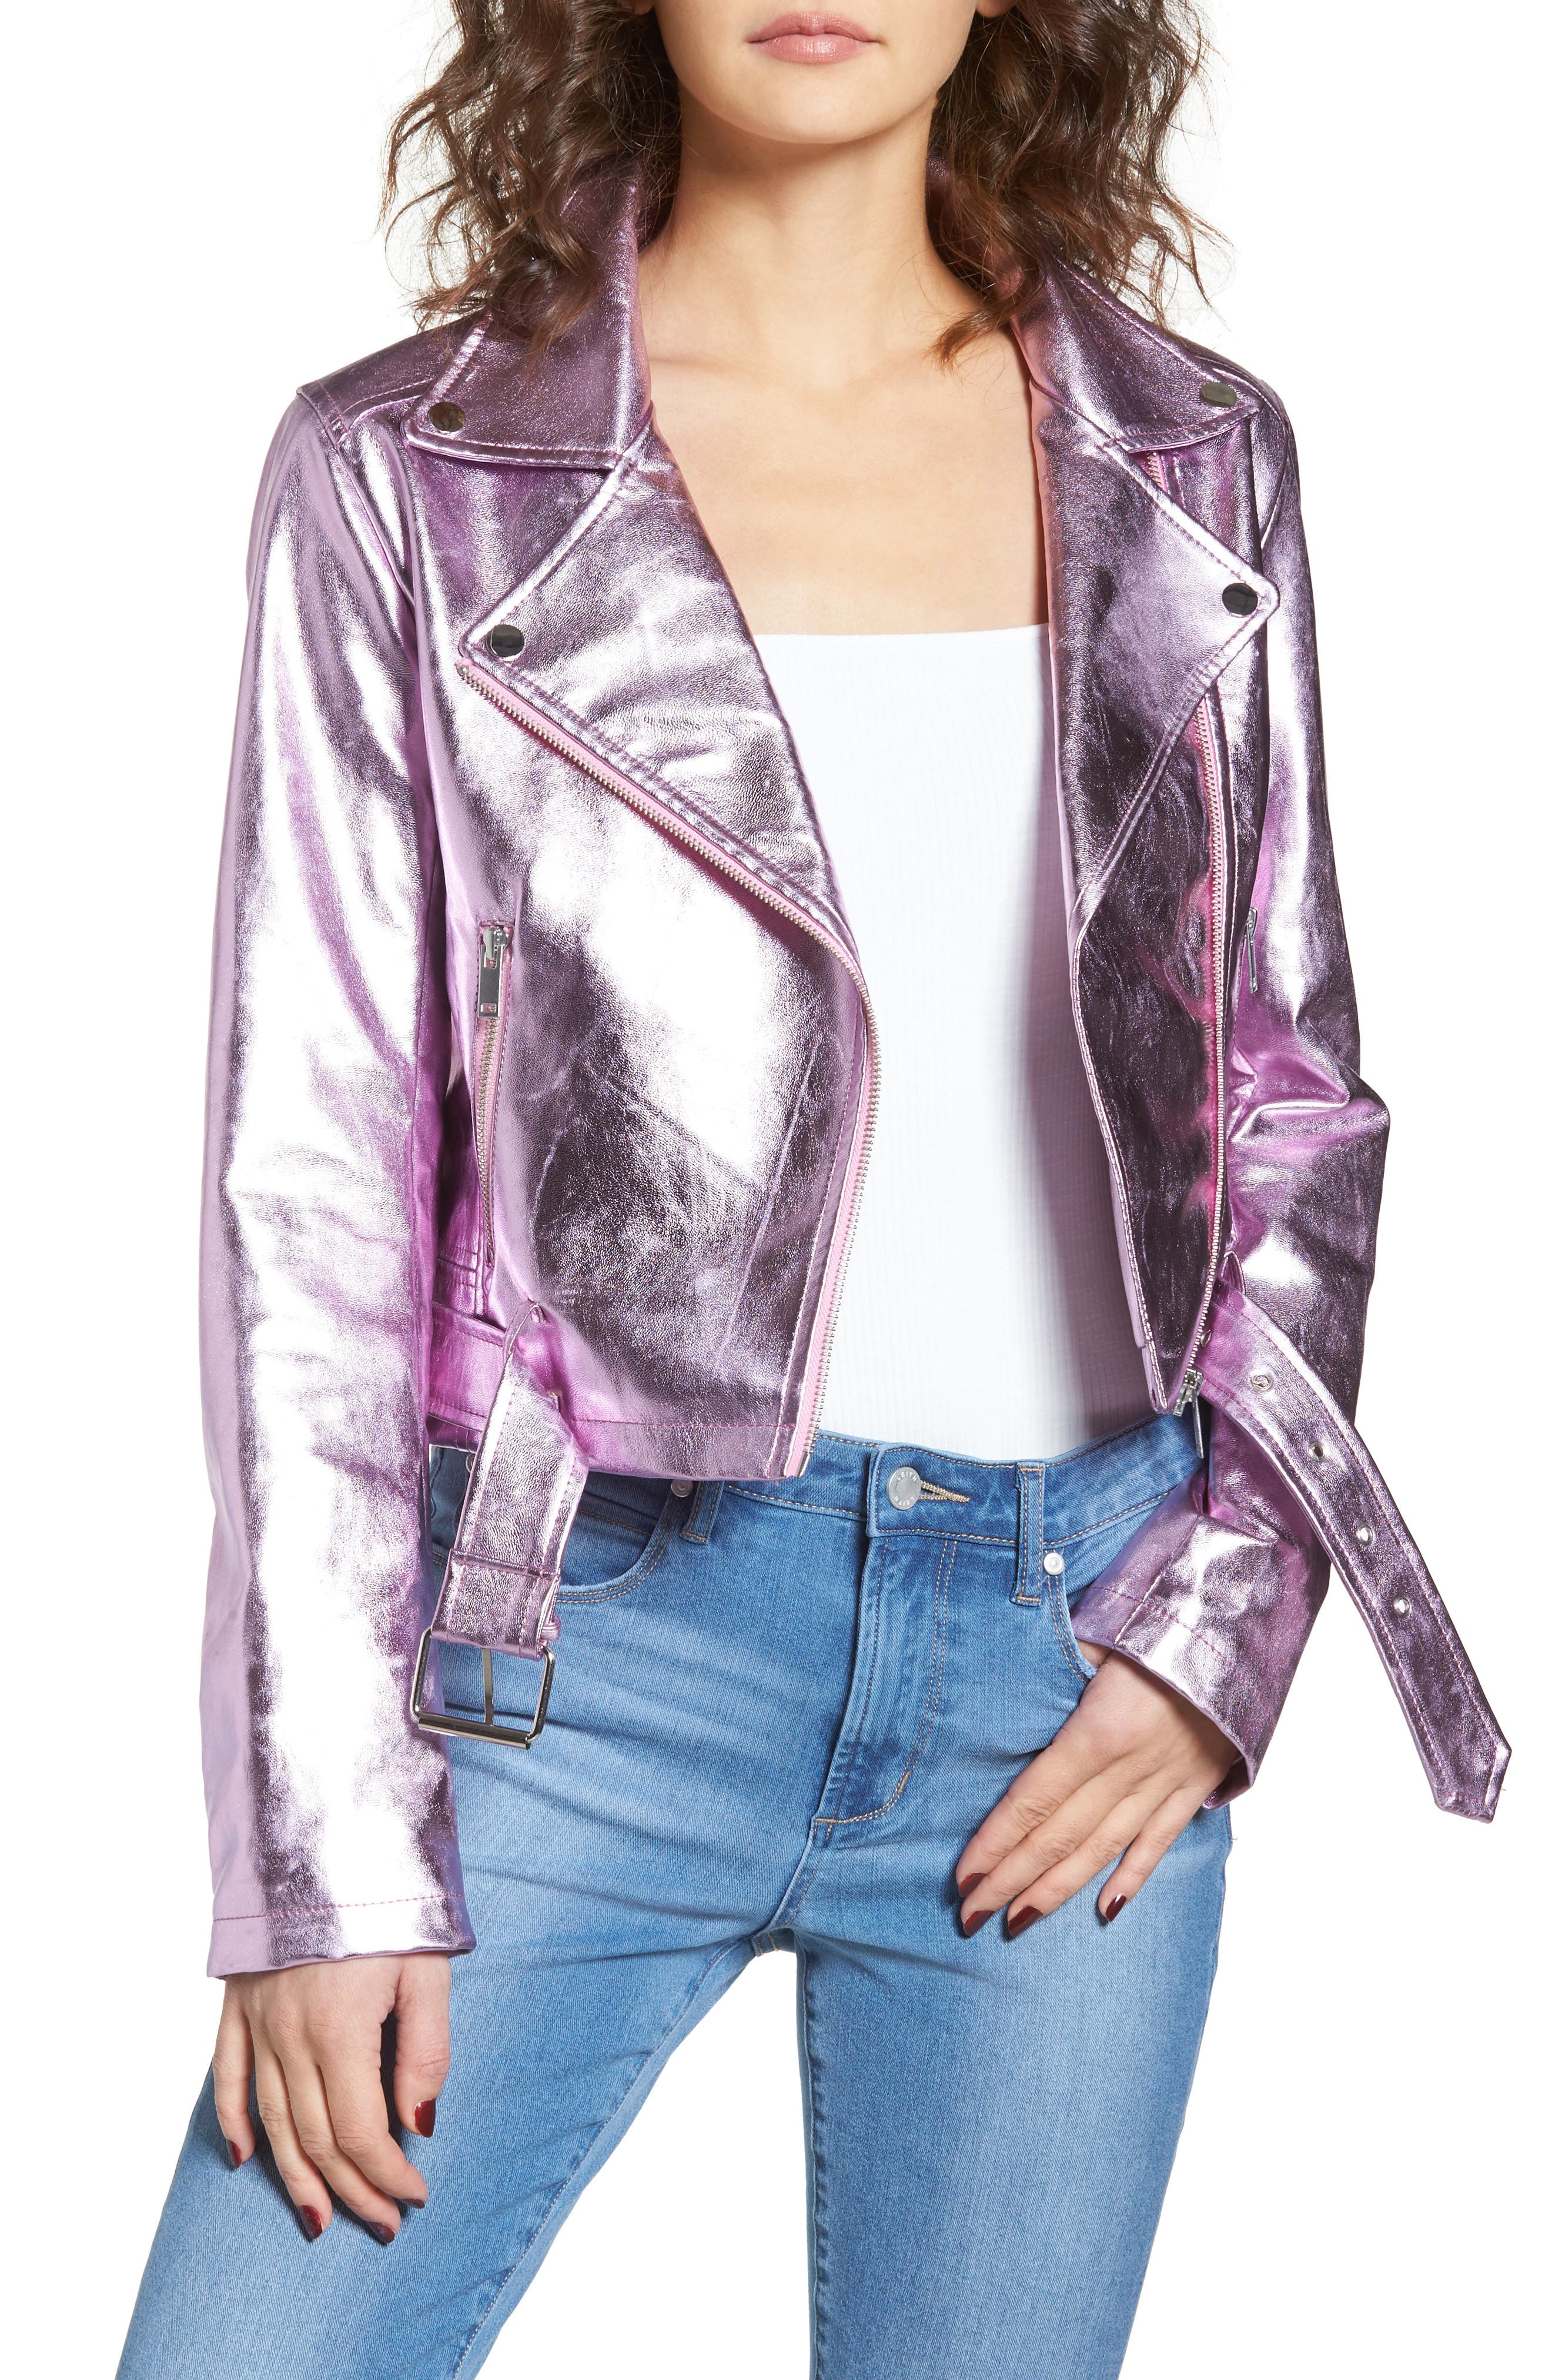 Main Image - Lovers + Friends Grant Metallic Jacket